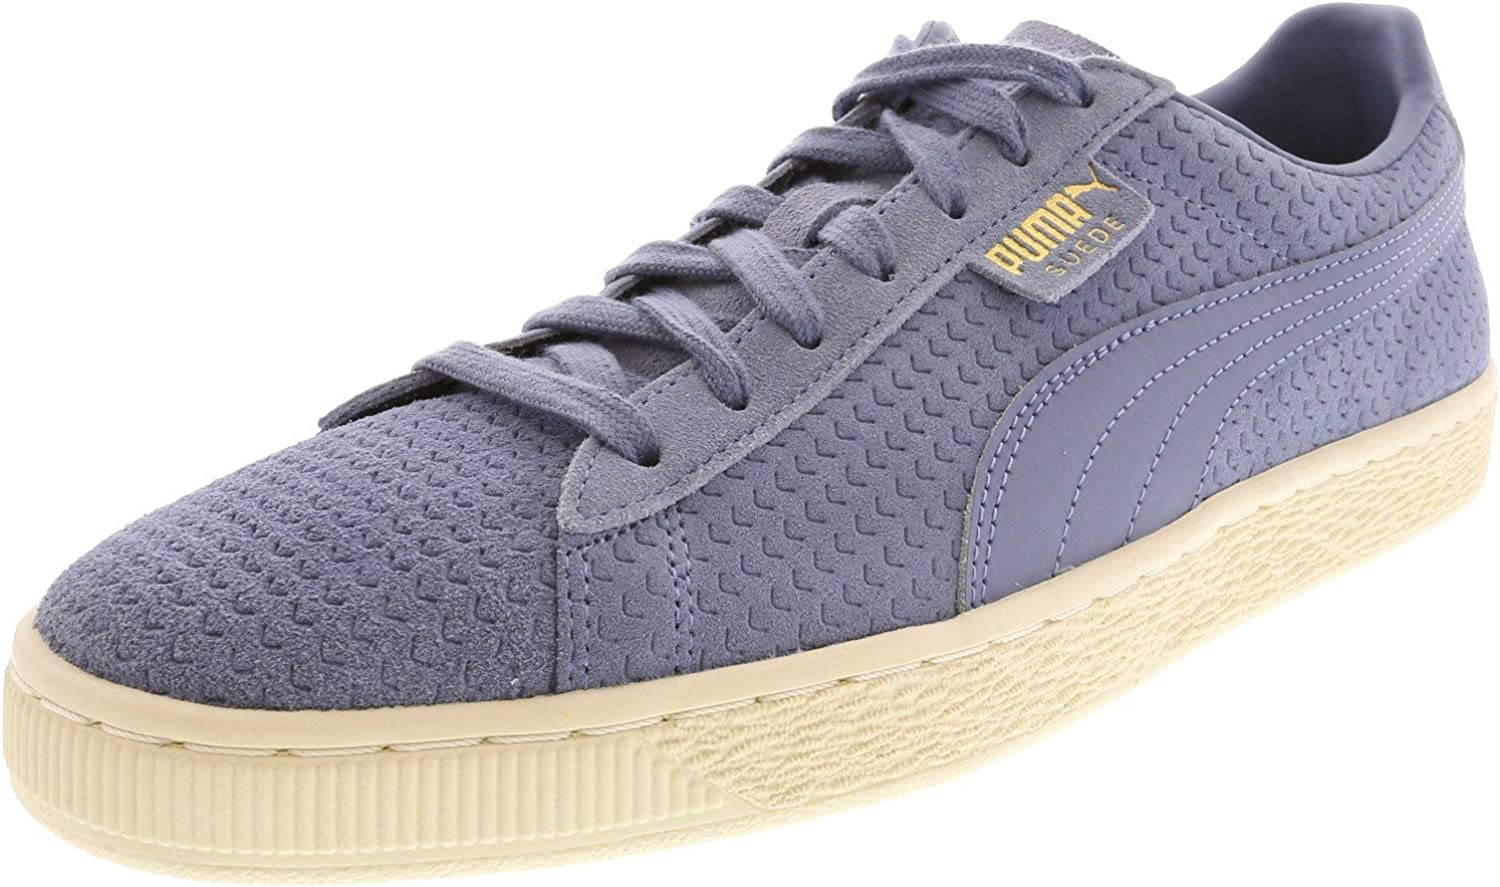 PUMA Men's Suede Classic Perforation Ankle-High Fashion Sneaker